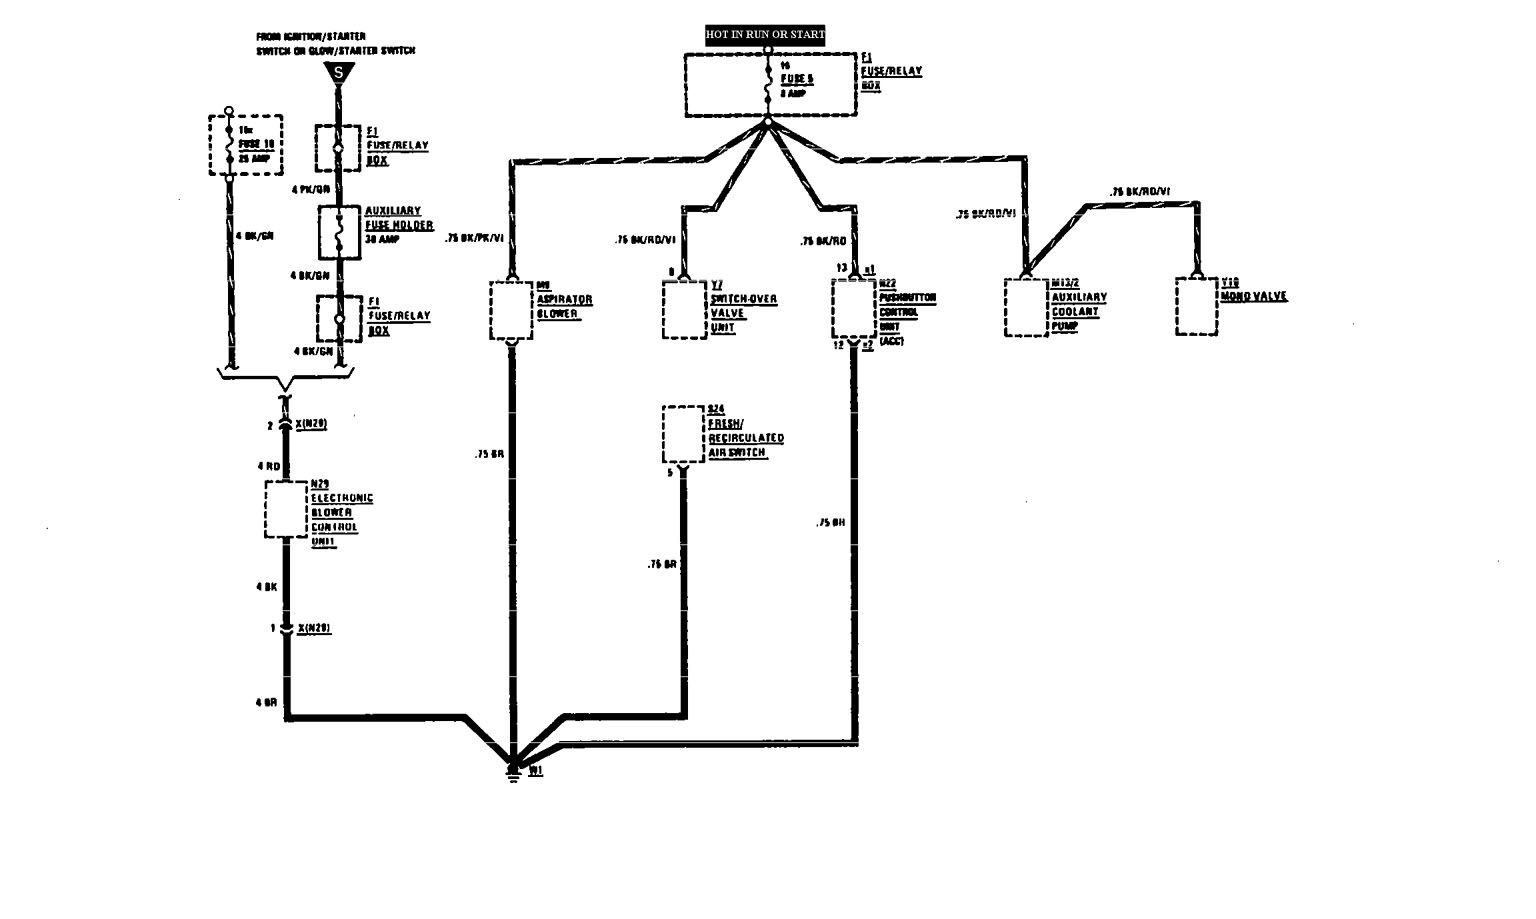 hight resolution of e500 wiring diagram likewise mercedes ml430 engine diagram together with 2000 mercedes s500 2001 mercedes benz s430 fuse